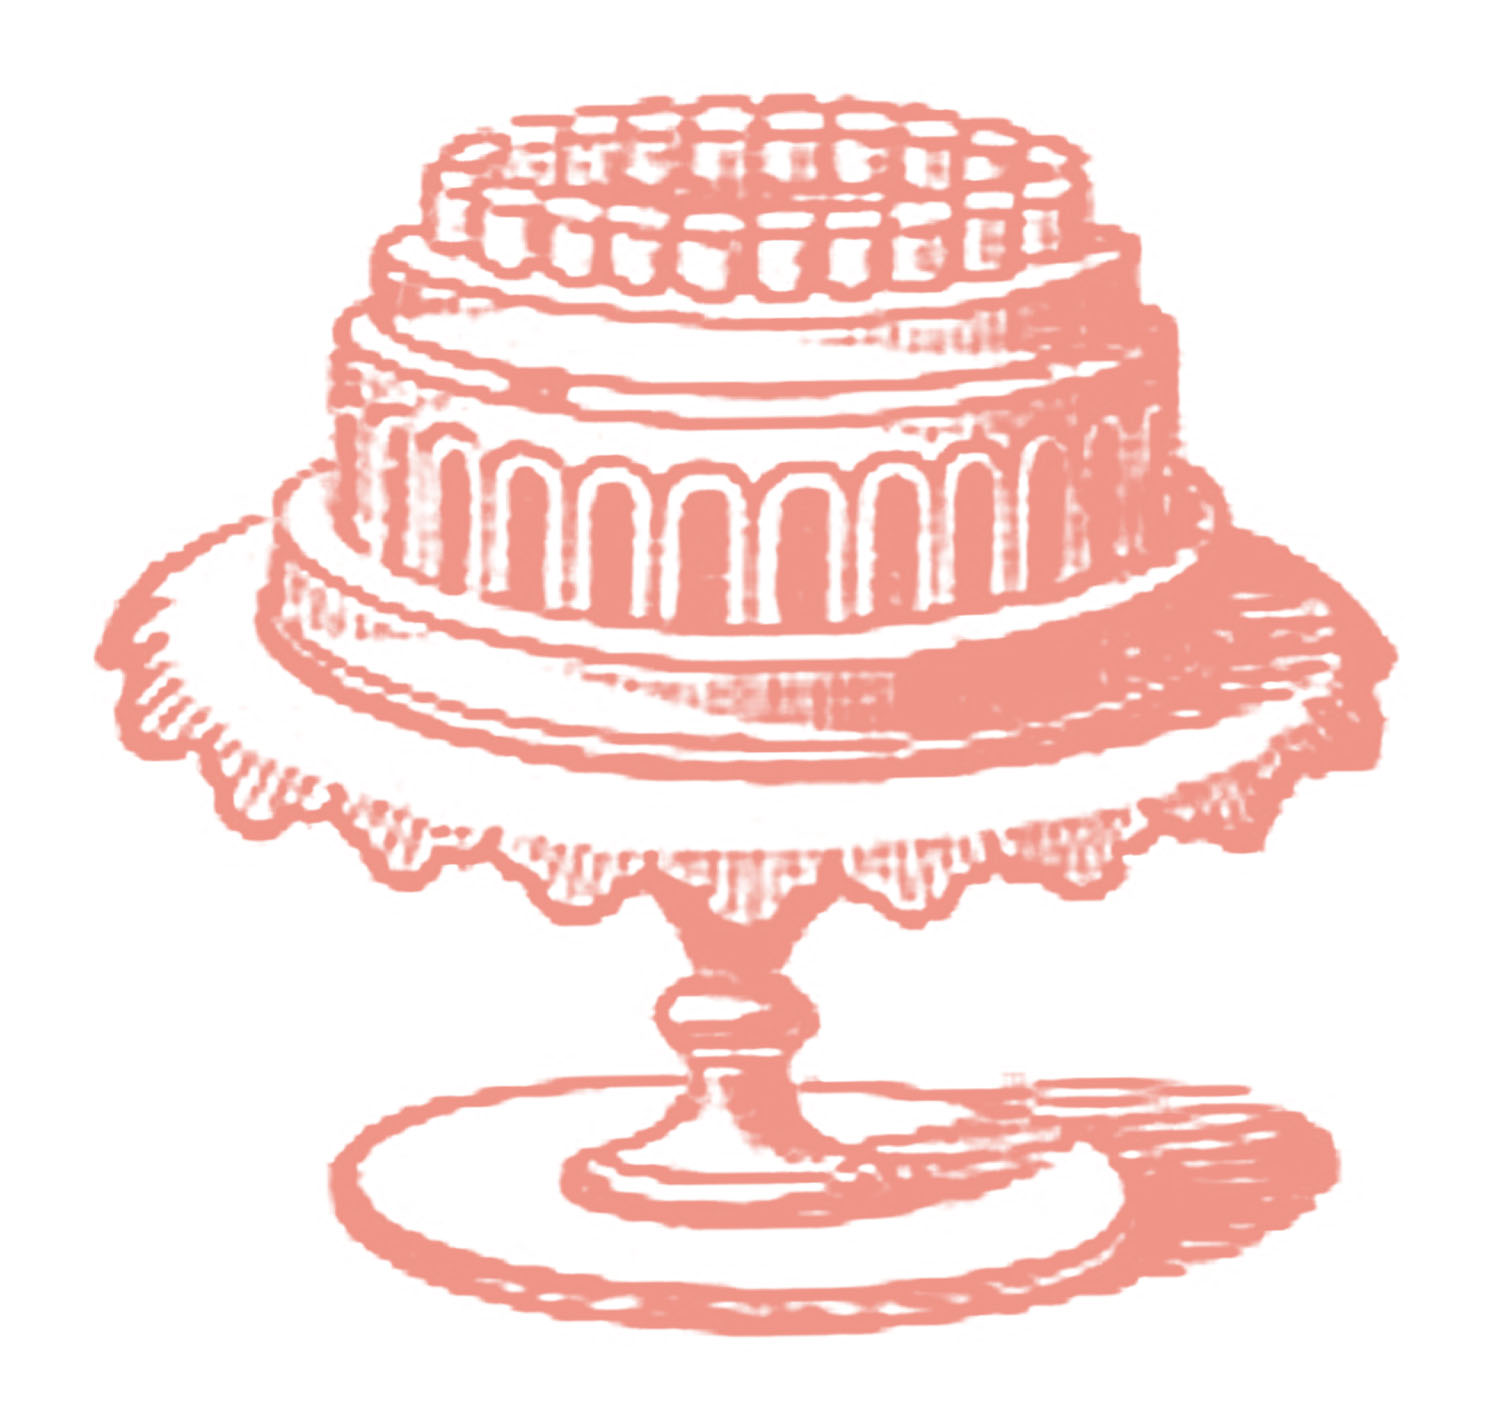 Free Vintage Cake Cliparts, Download Free Clip Art, Free.